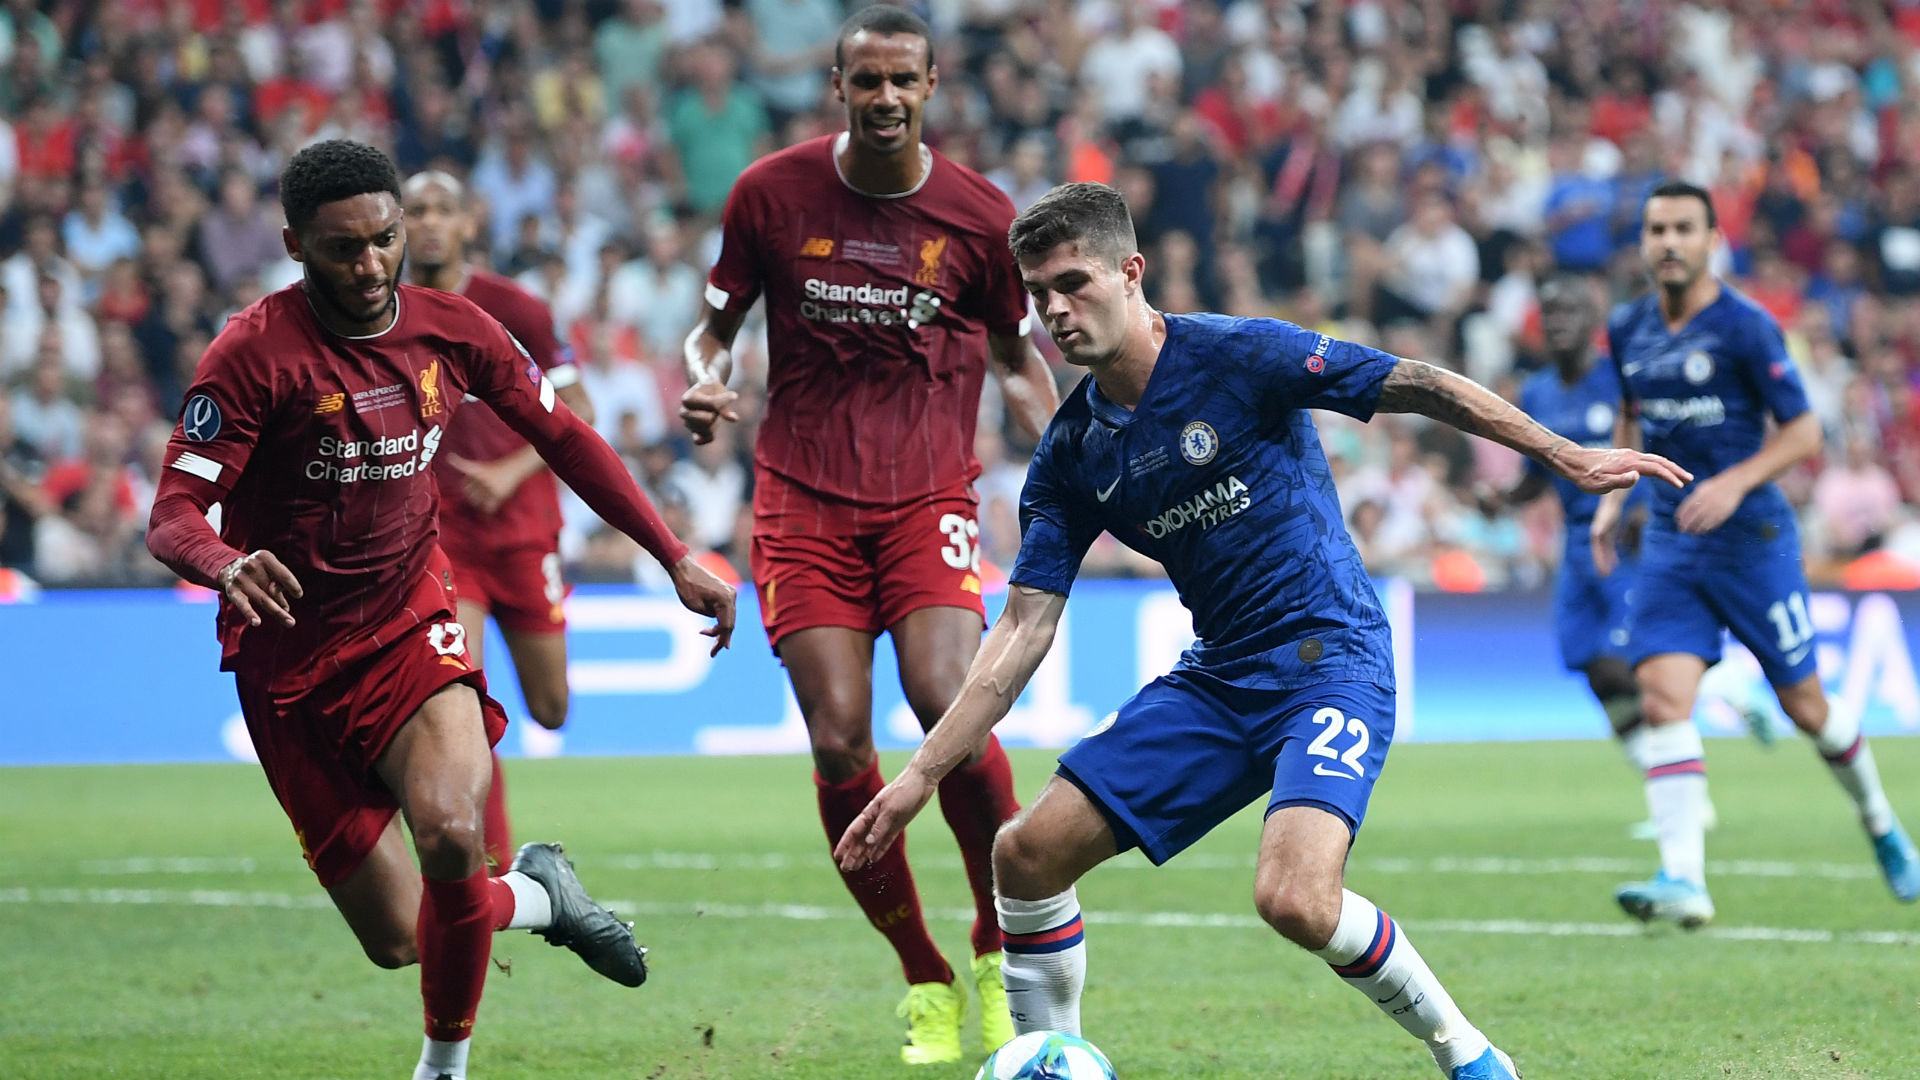 USMNT News: 'Lots more to come' from Christian Pulisic at Chelsea ...